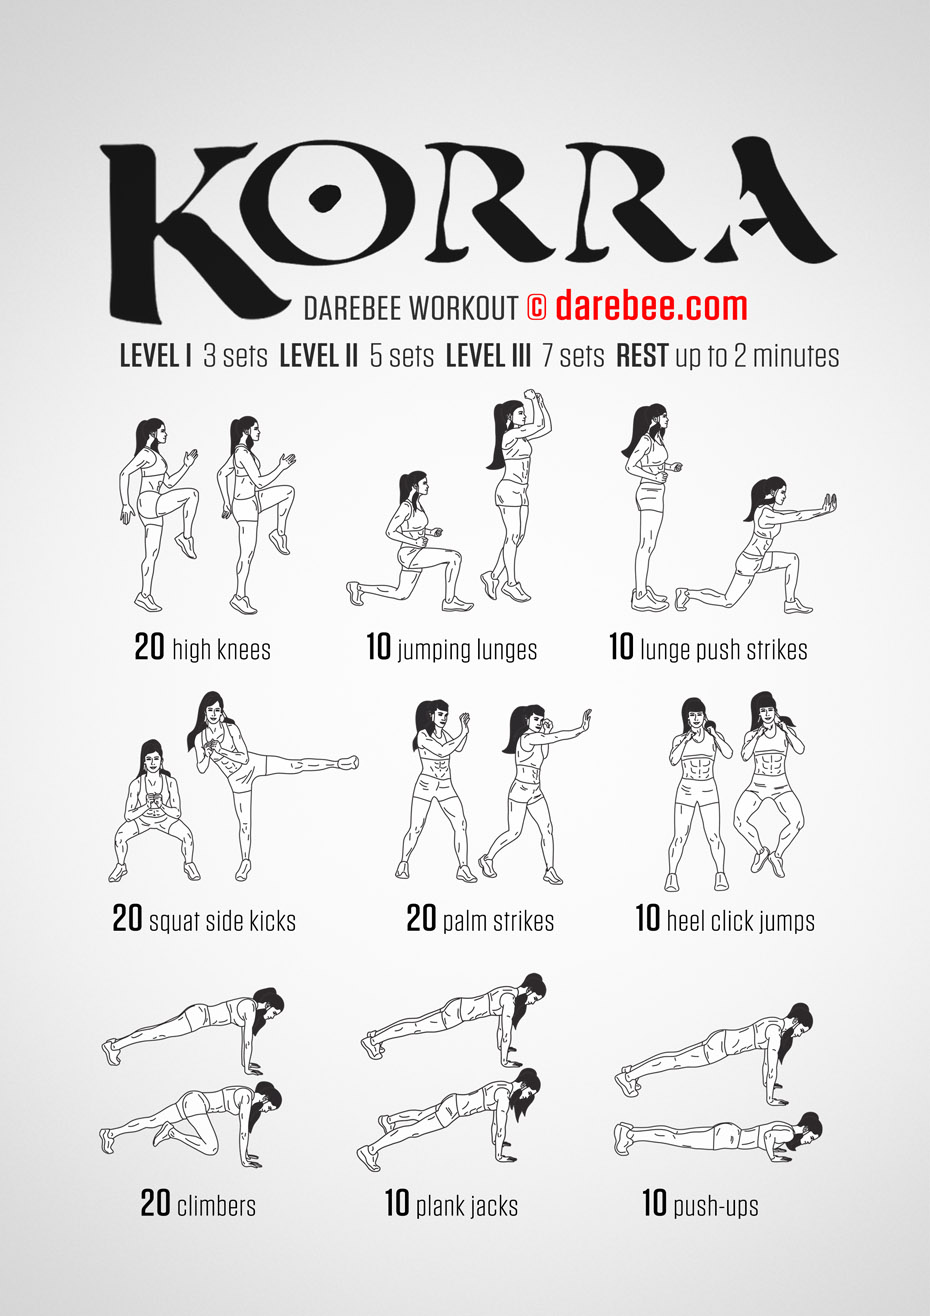 Darabee workout for a fresh workout